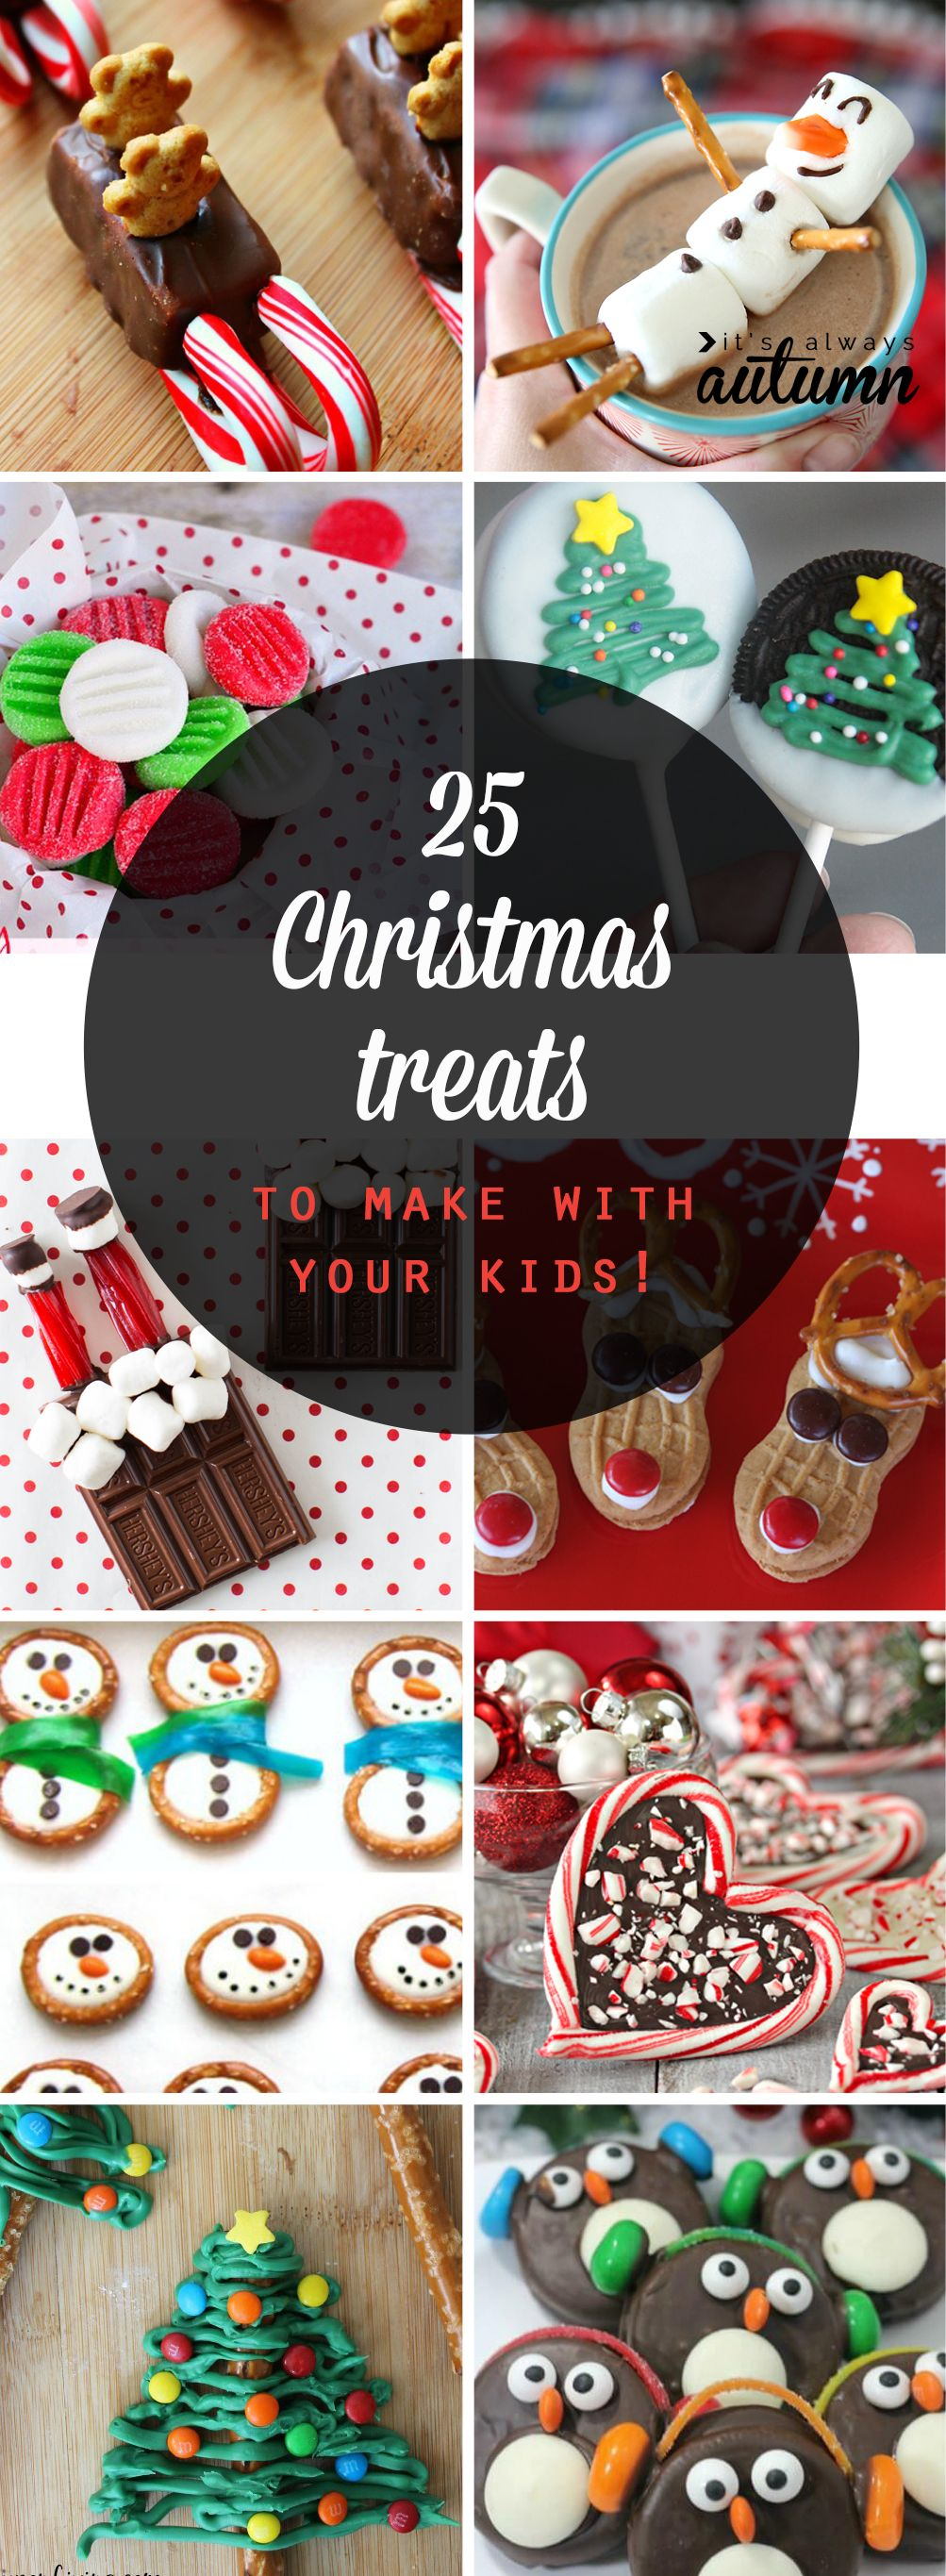 25 Adorable Christmas Treats To Make With Your Kids It S Always Autumn Fun Christmas Treat Christmas Treats Christmas Treats To Make